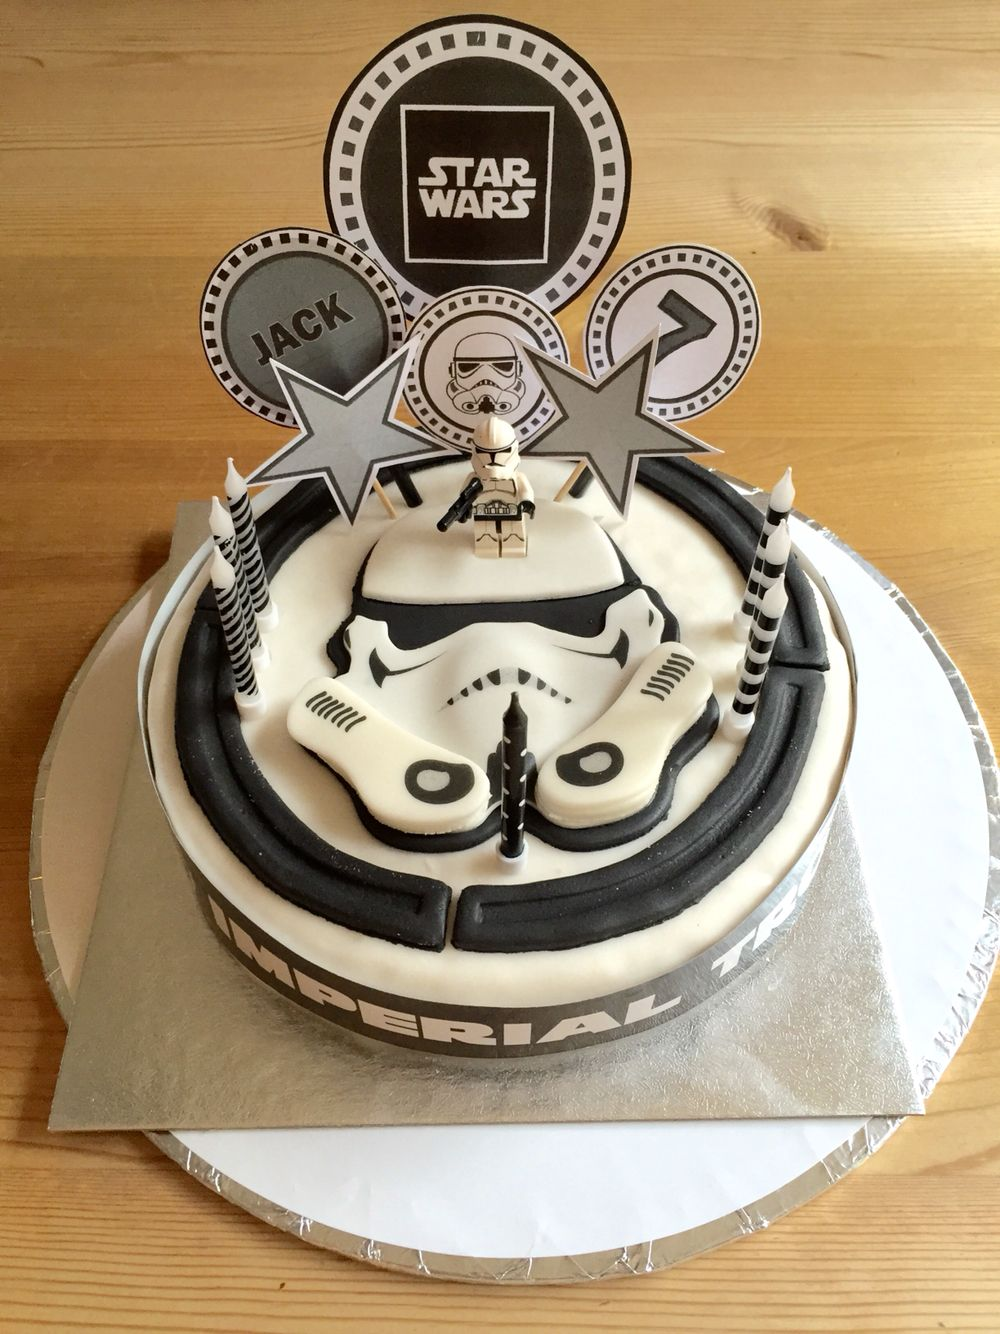 Star Wars Cake From Tesco For GBP10 Customised By Making Toppers On Publisher Printed Them Out And Attached To Black Straws